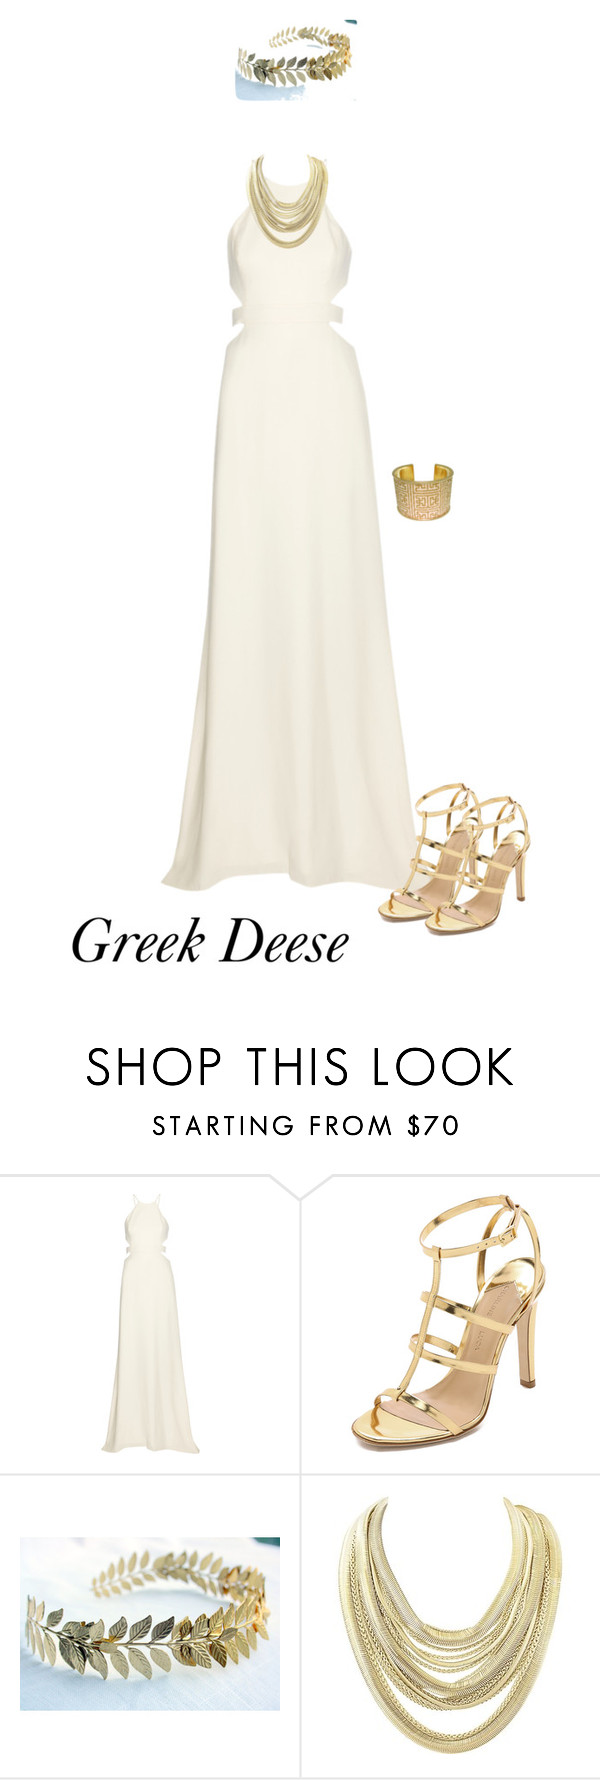 """greek deese halloween costume"" by pocca liked on Polyvore"